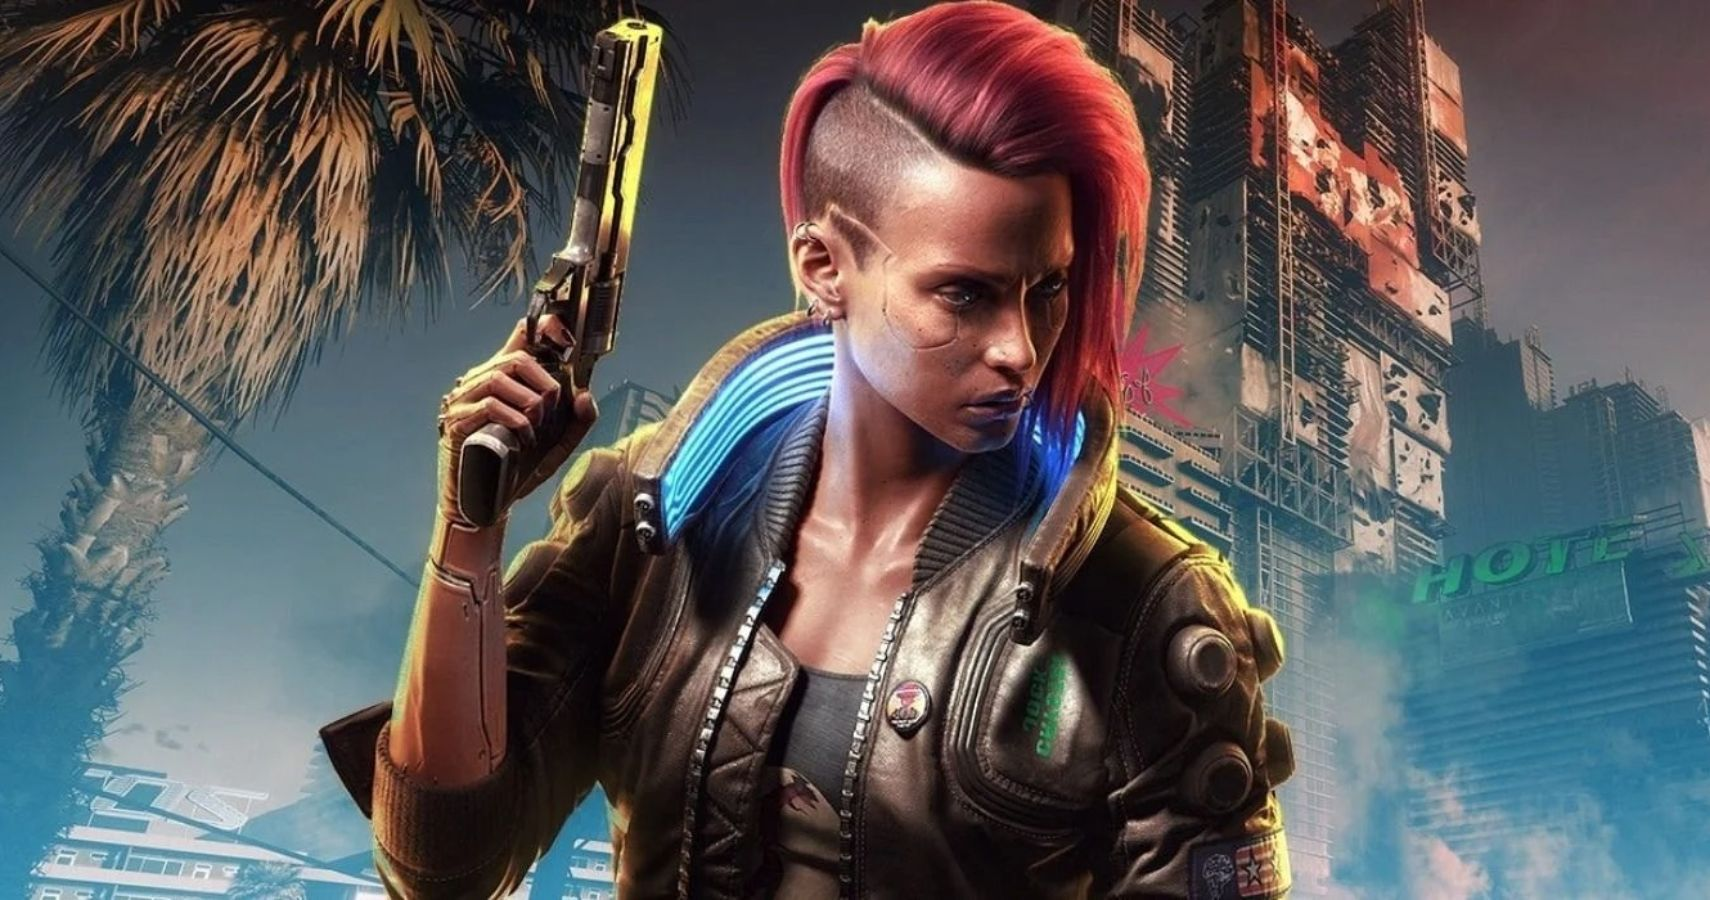 Sony Recommends Playing Cyberpunk 2077 On PS5 Or PS4 Pro, As Base PS4 Still Has Issues